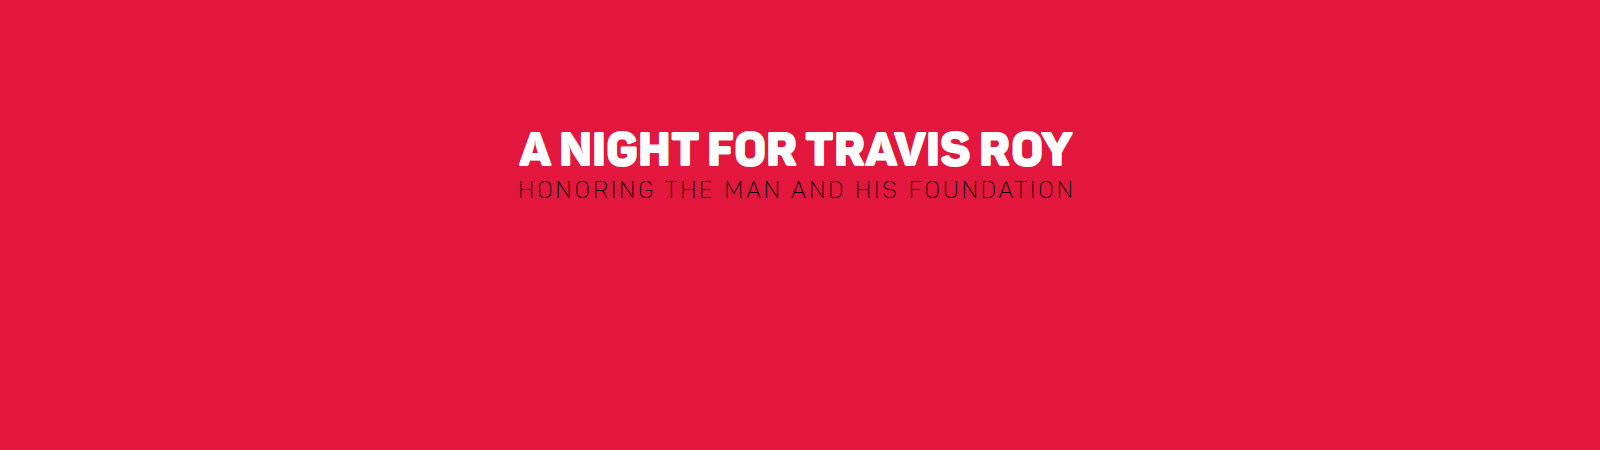 A Night For Travis Roy